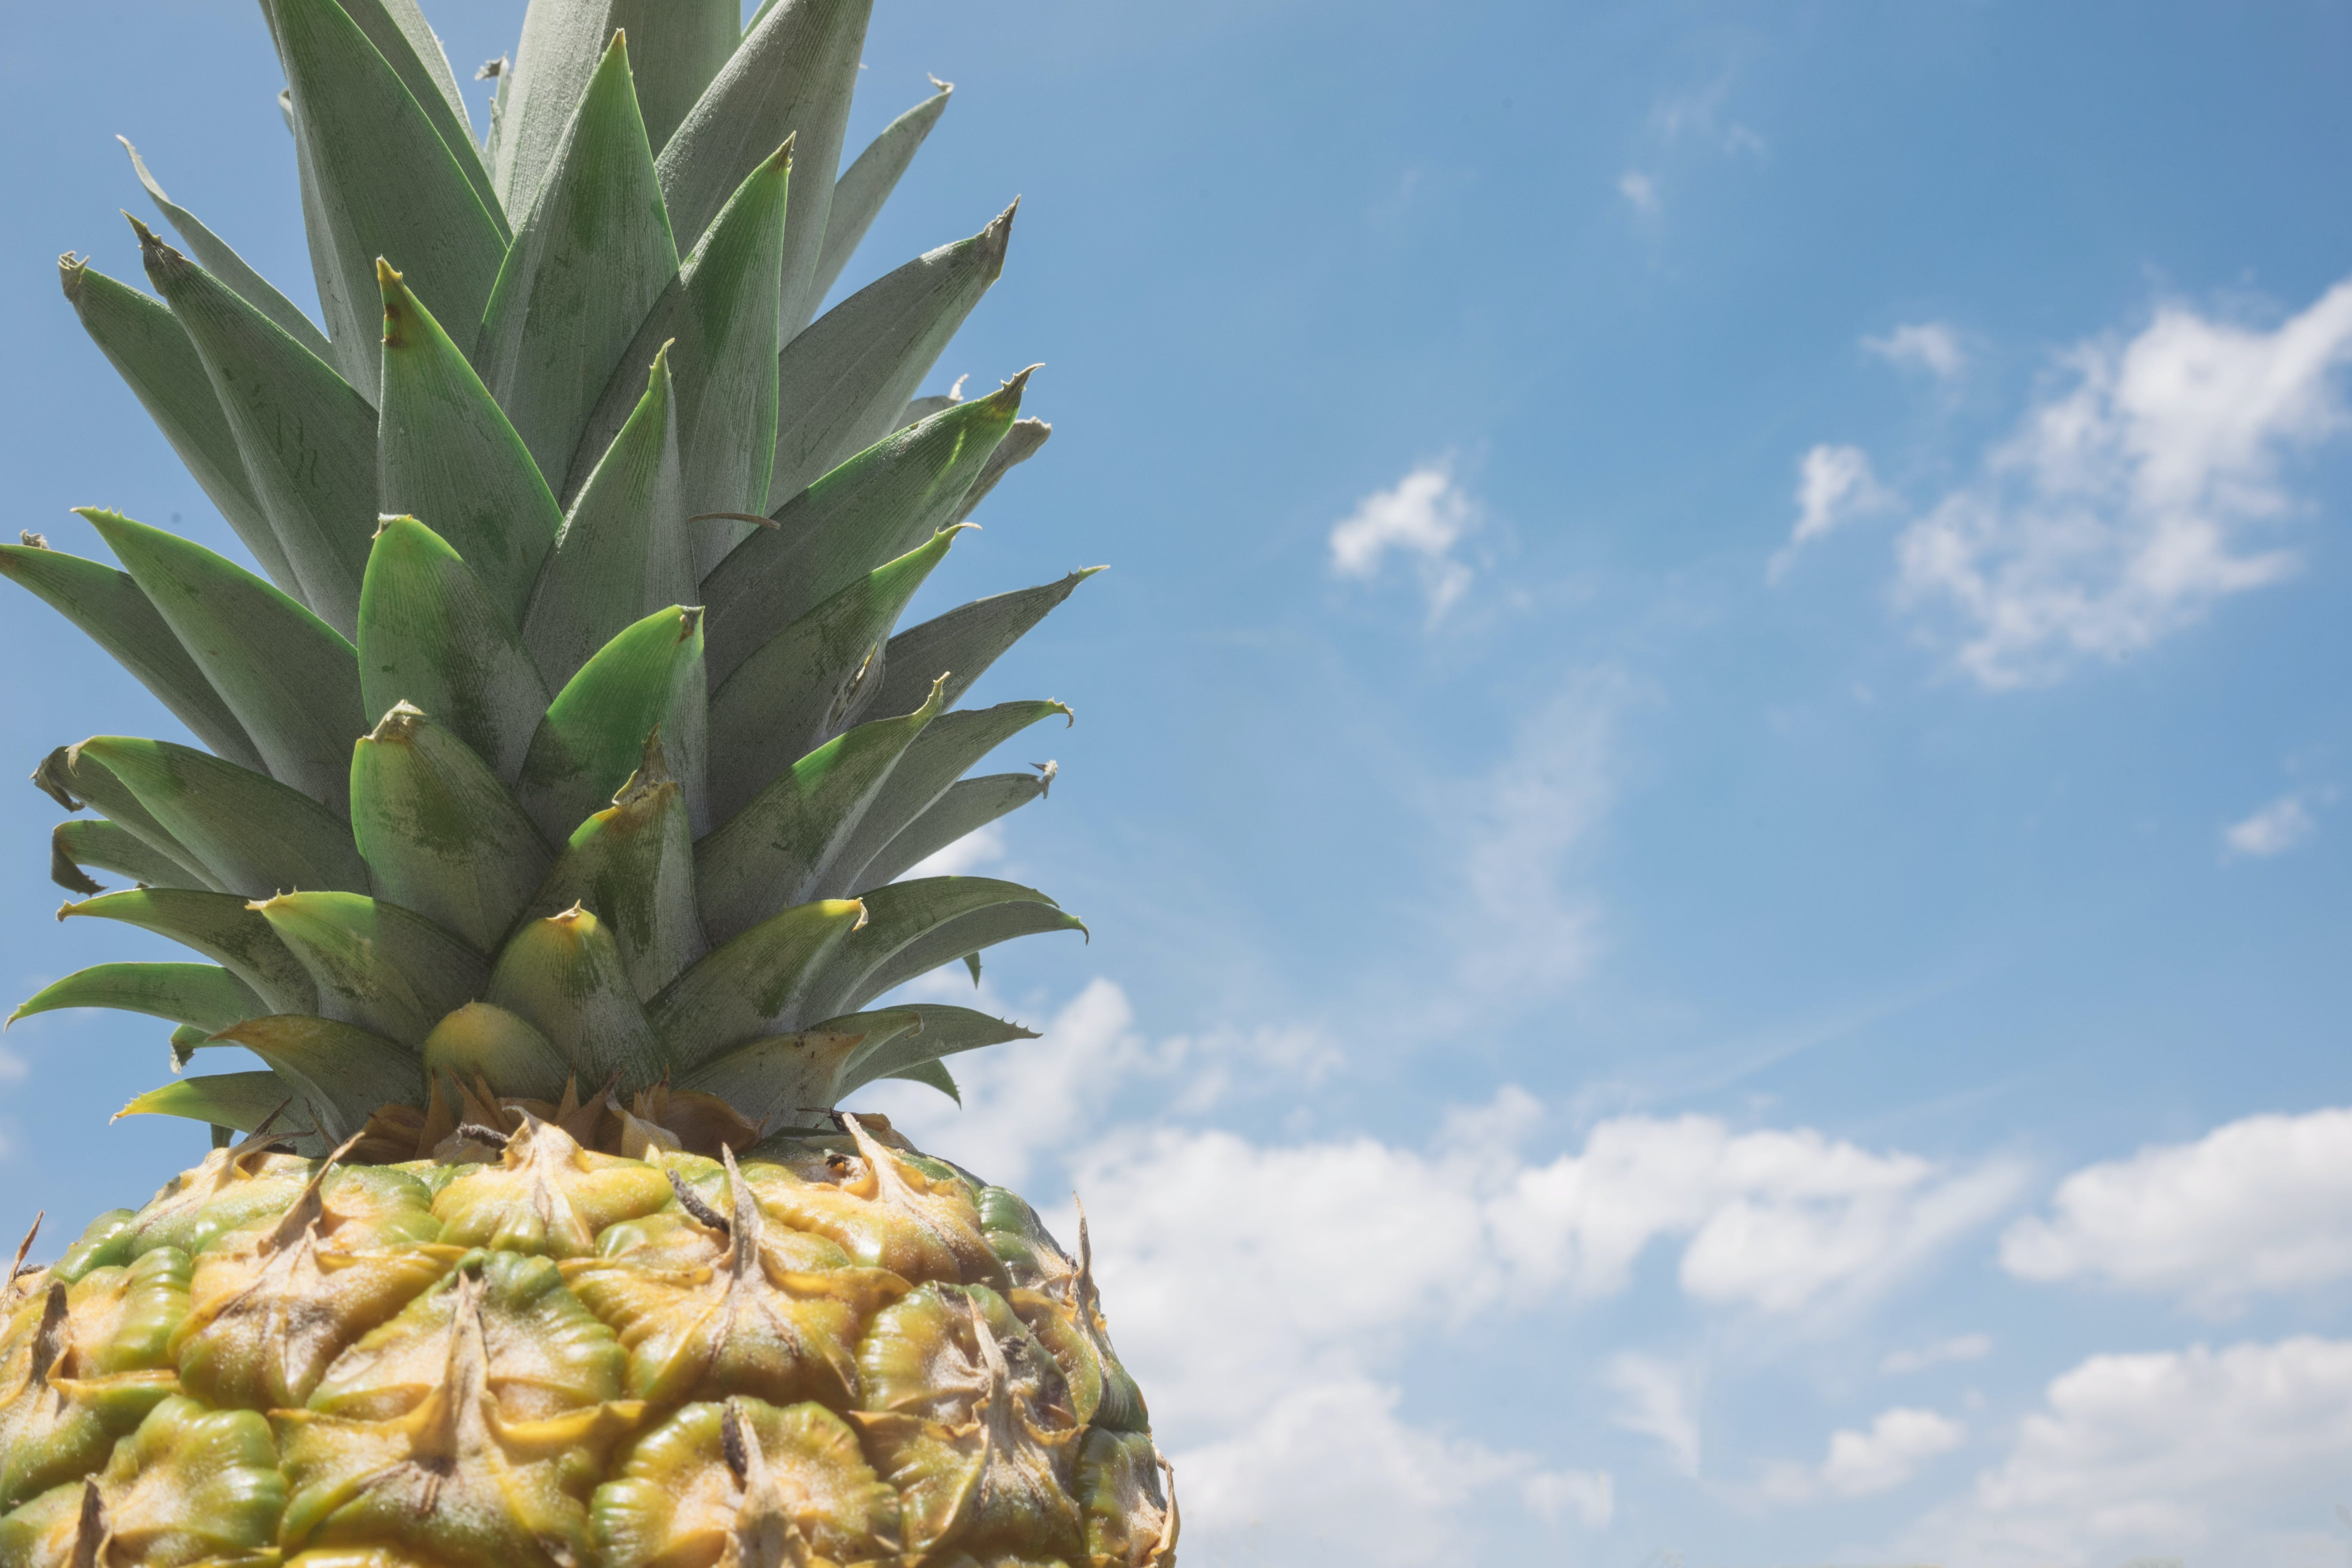 Focus Photo of Yellow and Green Pineapple Under Blue Sky